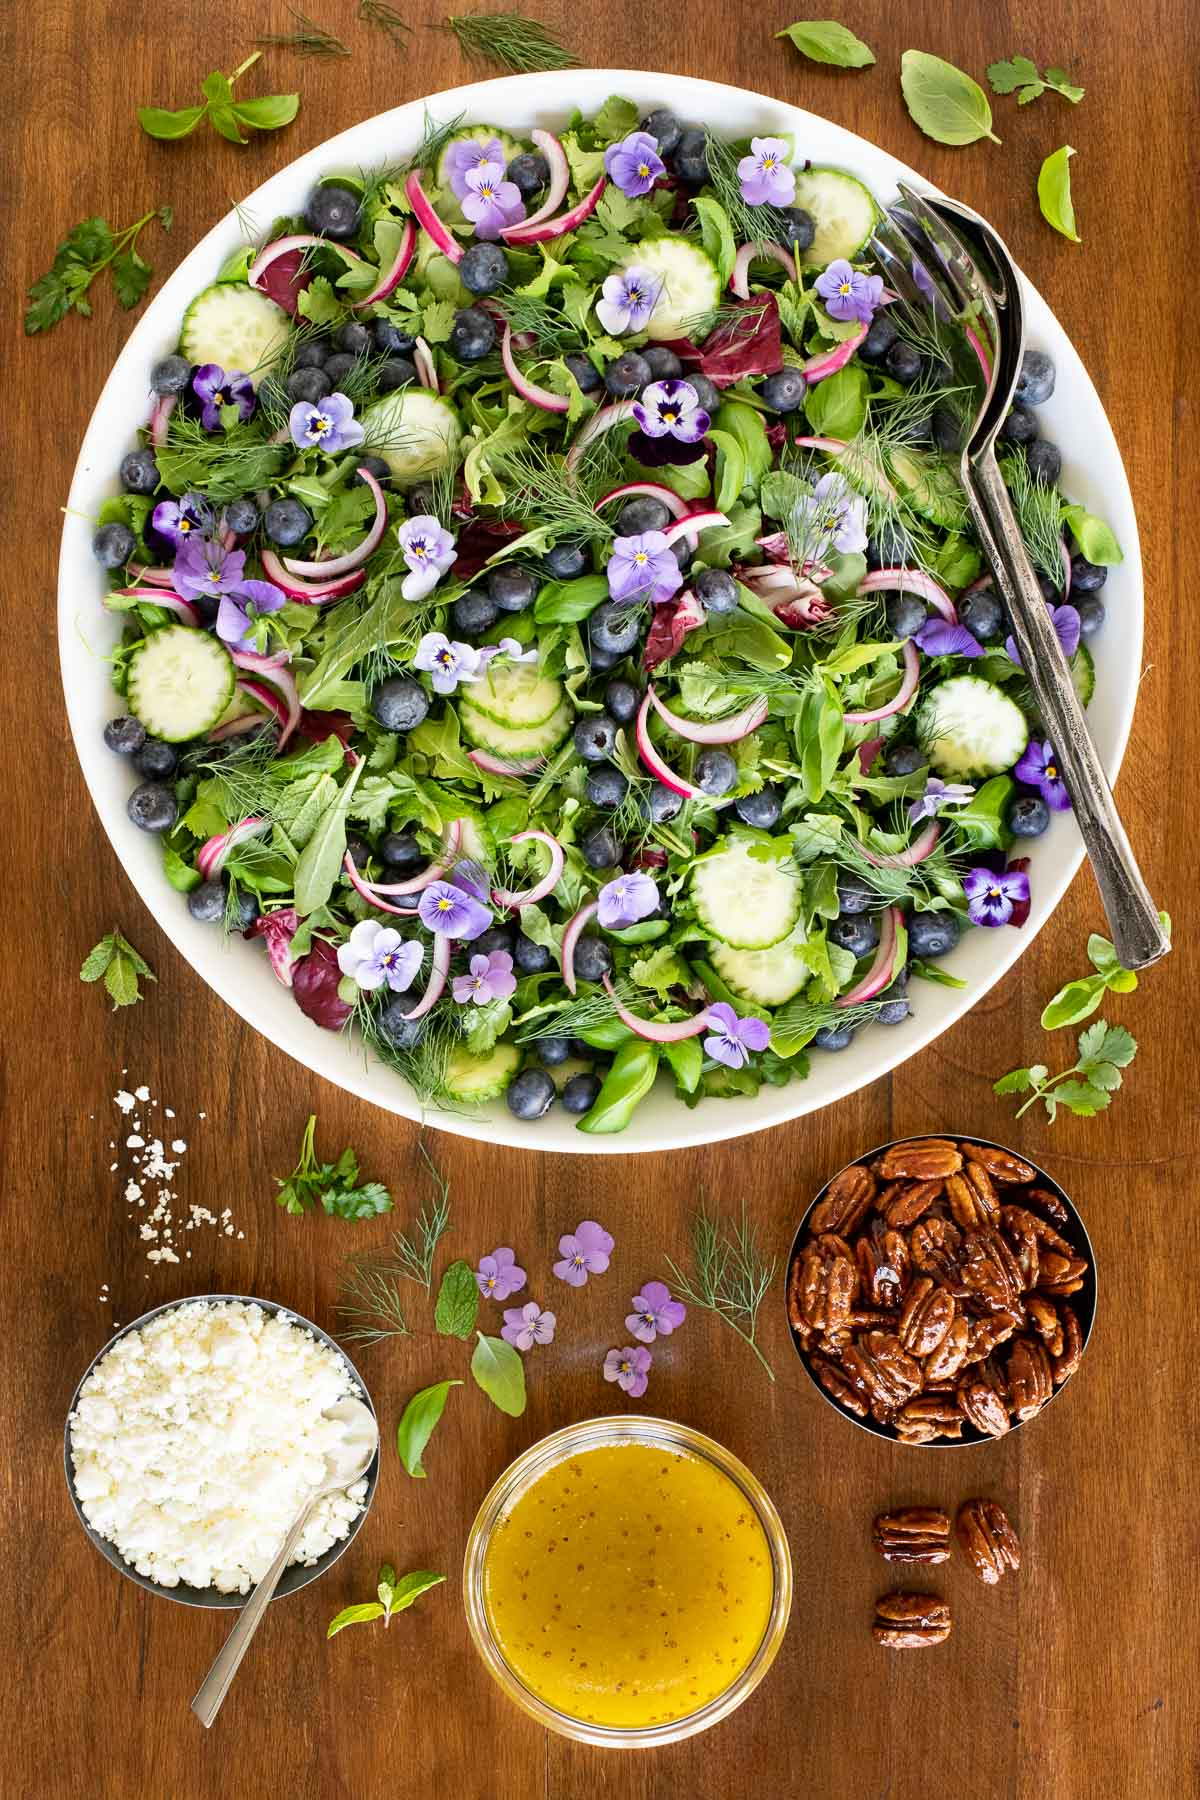 Vertical overhead photo of Blueberry Arugula Herb Salad in a large white presentation bowl on a wood table.